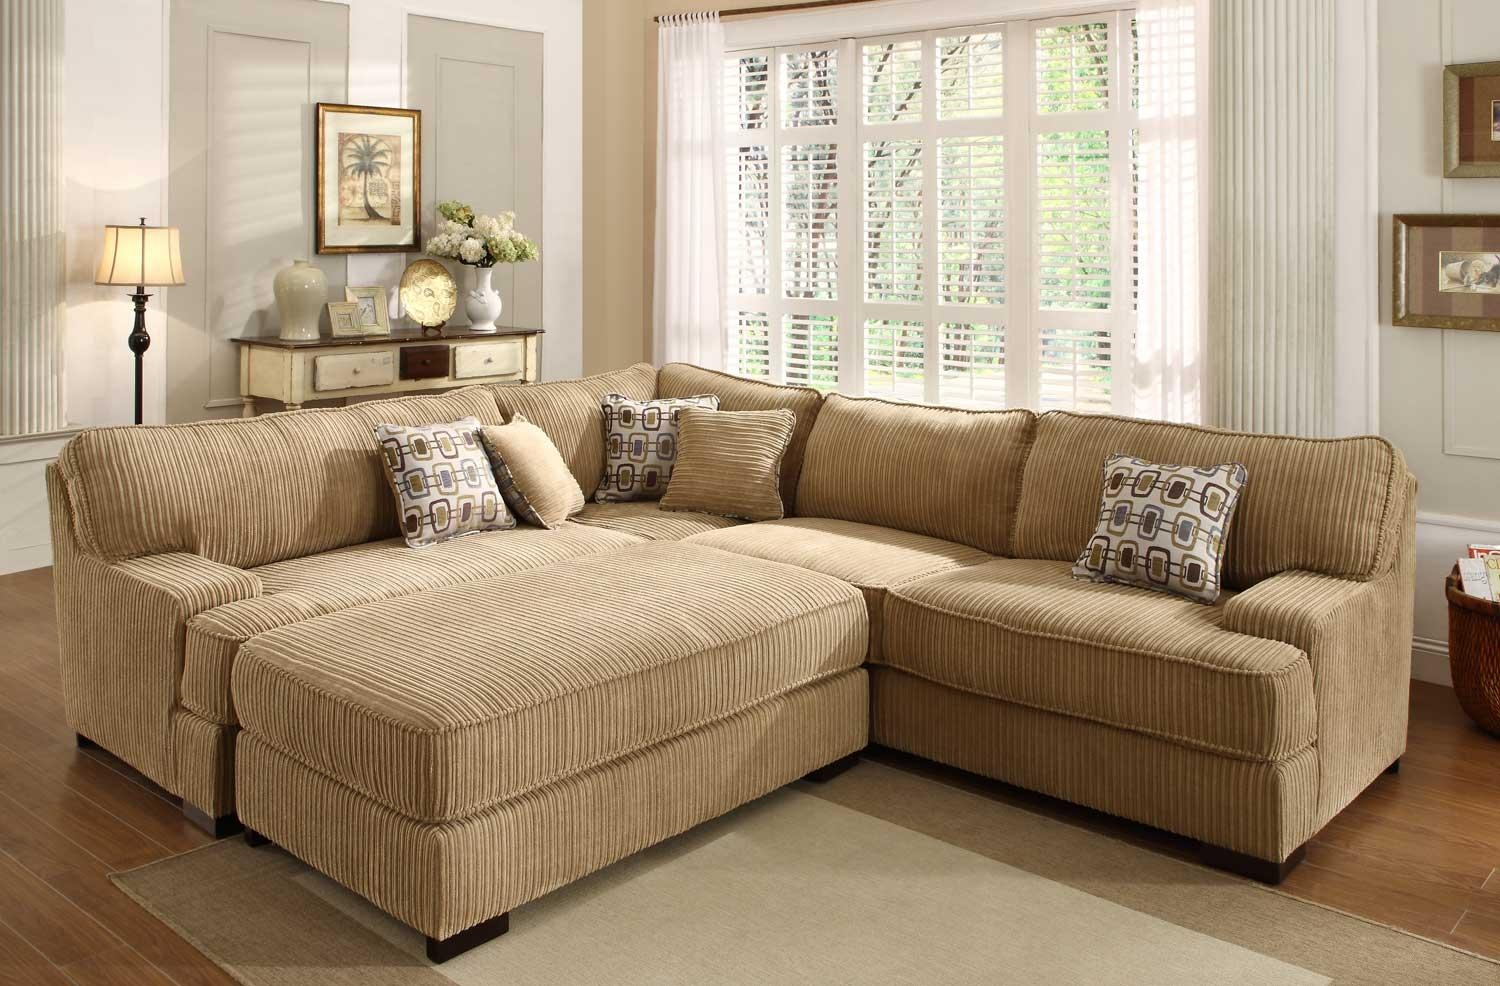 Sofas Center : Oversized Sectionals Sectional Sofas For Sale Inside Sectional Sofa With Large Ottoman (Image 18 of 20)